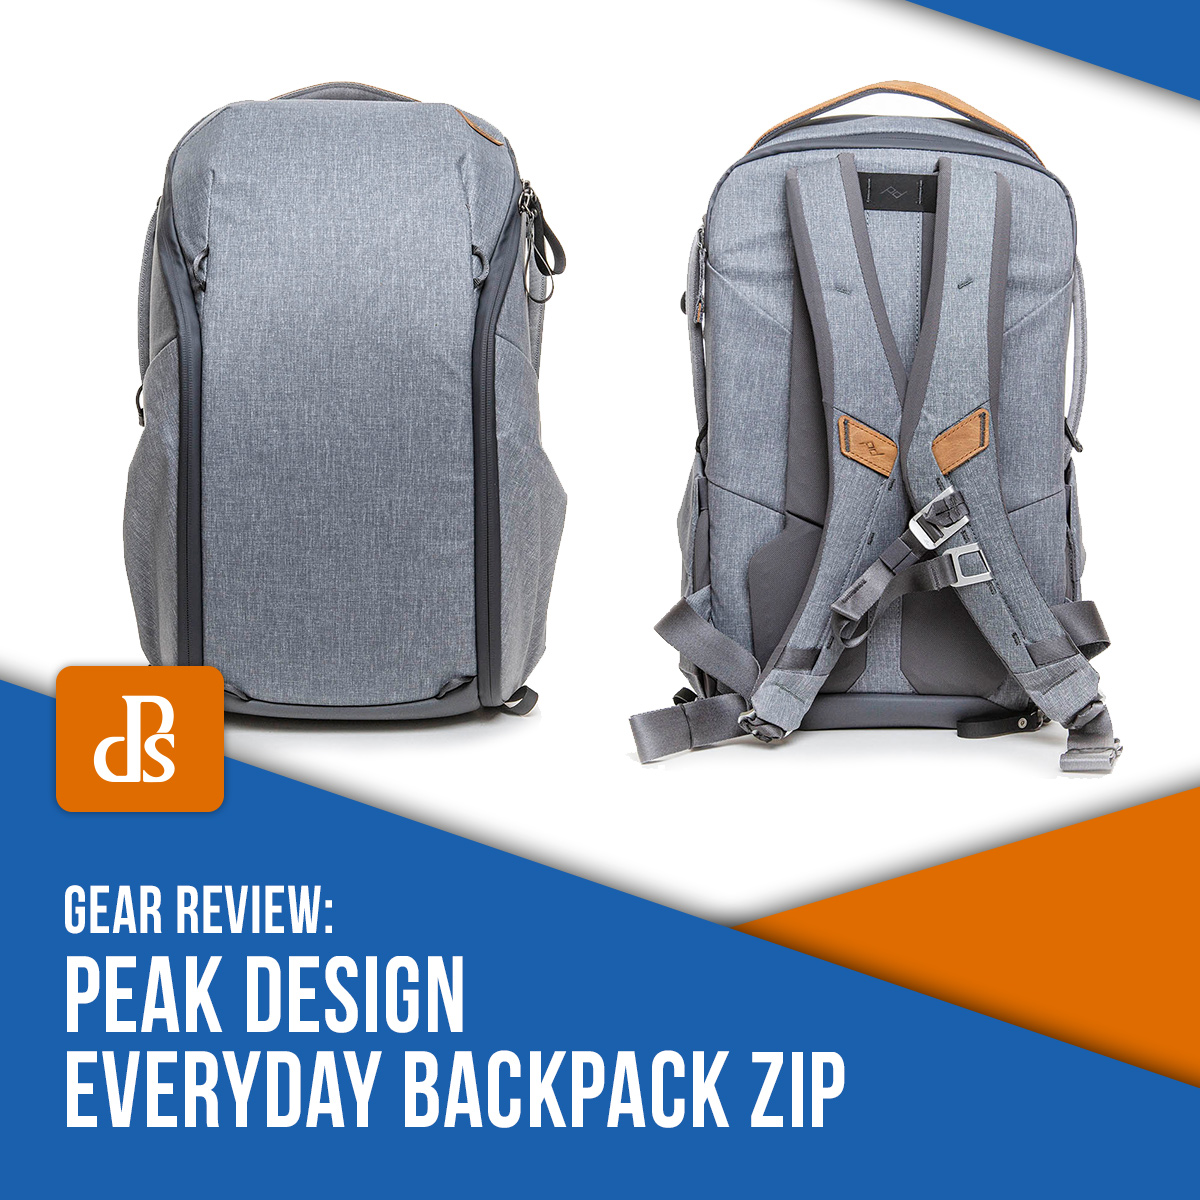 https://i1.wp.com/digital-photography-school.com/wp-content/uploads/2020/05/dps-peak-design-everyday-backpack-zip-review.jpg?ssl=1